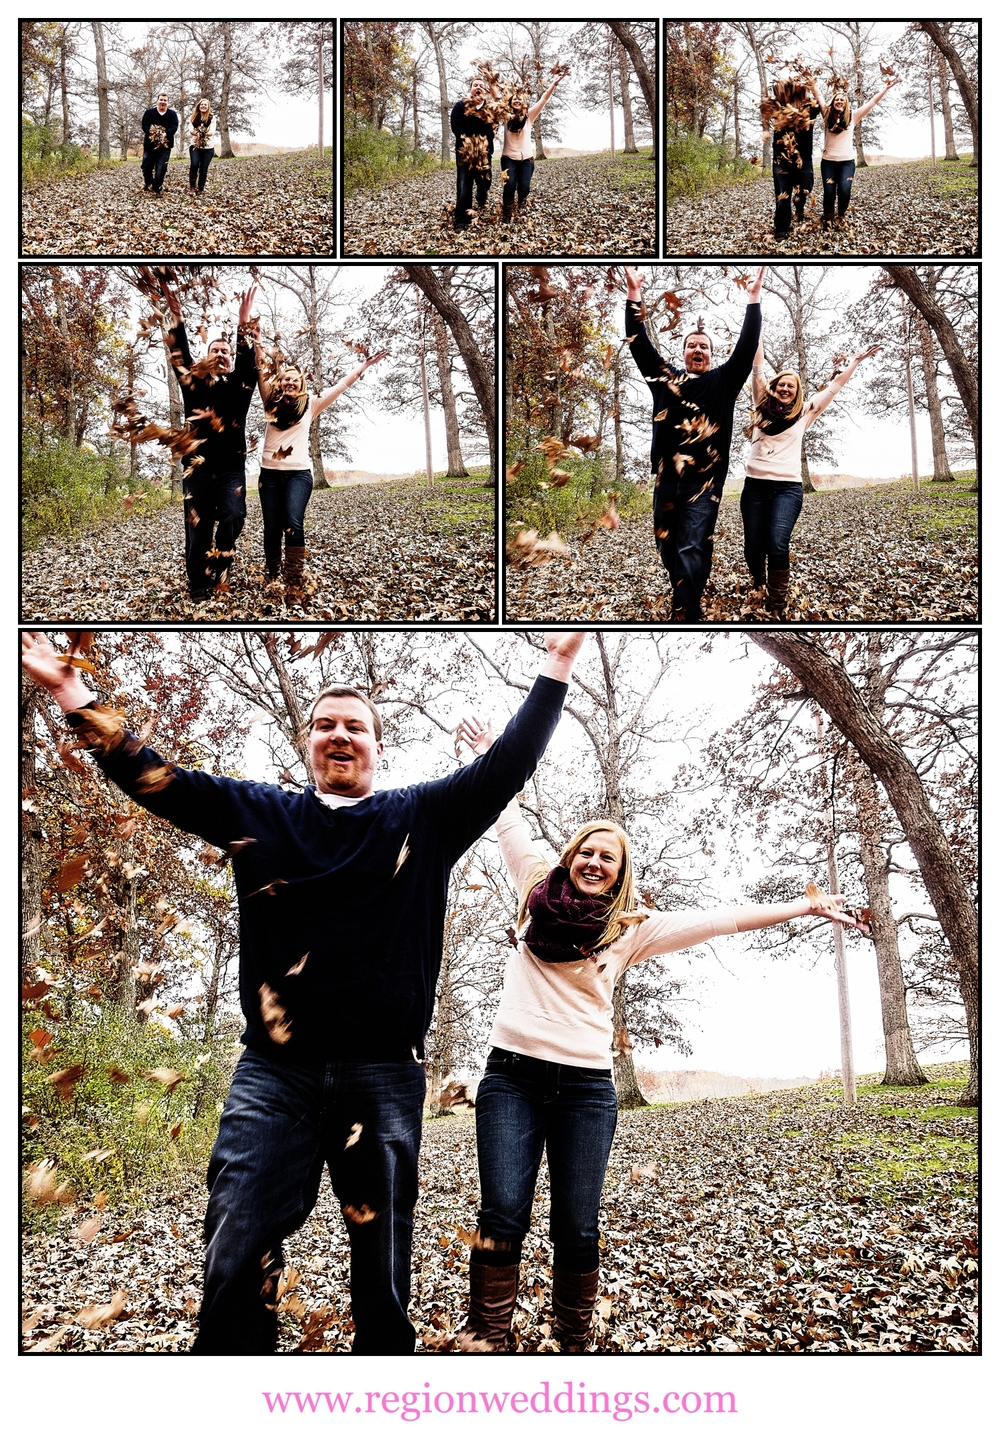 Leaf throwing fun at Lemon Lake Park for an Autumn engagement session.